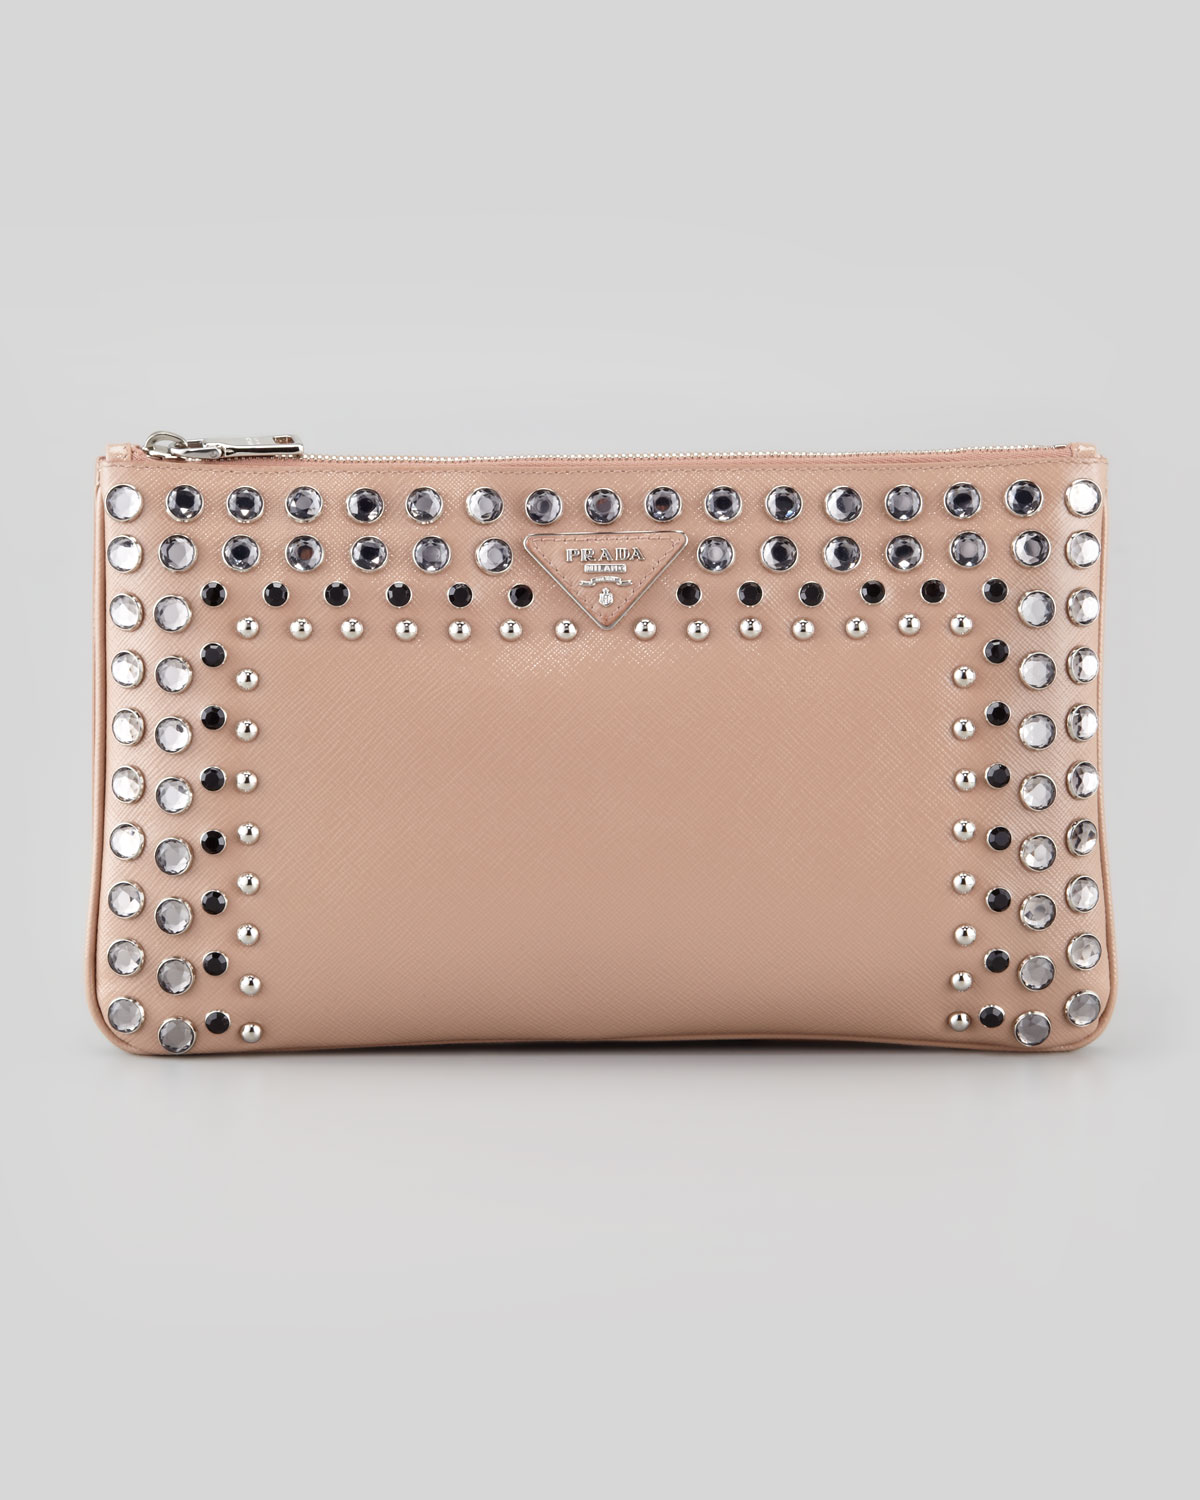 d2fcdf27a298 ... discount code for lyst prada saffiano vernice clutch bag in pink 121a3  29fc5